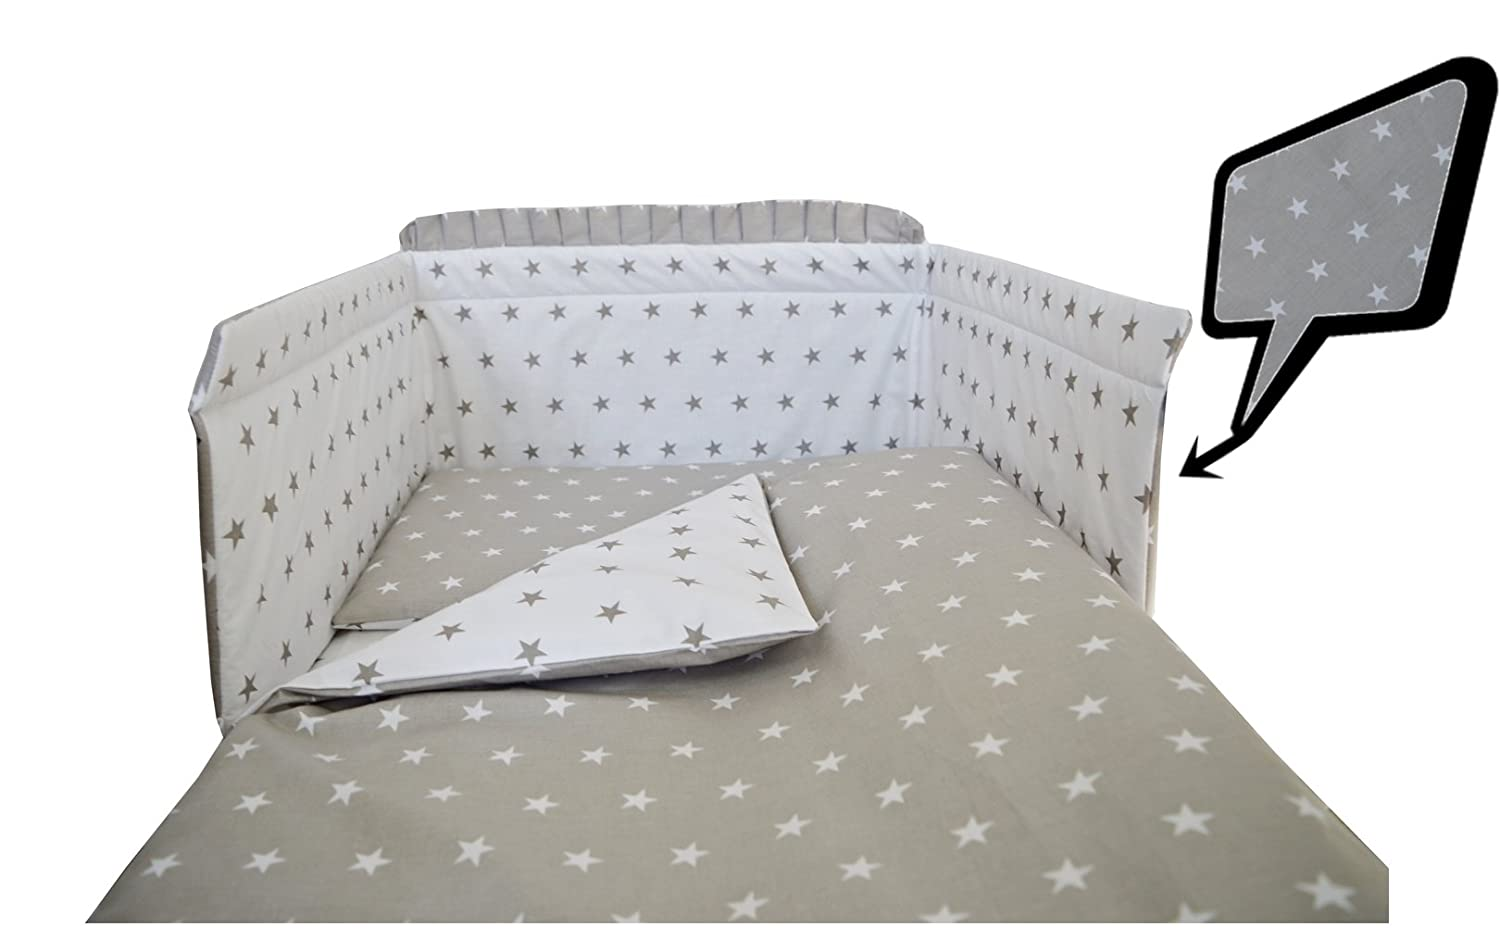 4 Piece Baby Bedding set - inc. Duvet cover + pillow case + bumper + plain fitted sheet Super Soft 100% COTTON Oeko-Tex tested fit COT 120X60 or COT BED140X70 (COT 120X60, BLUE STARS- BLUE - REVERSIBLE DUVET COVER) SCANDI BEDDING LIMITED